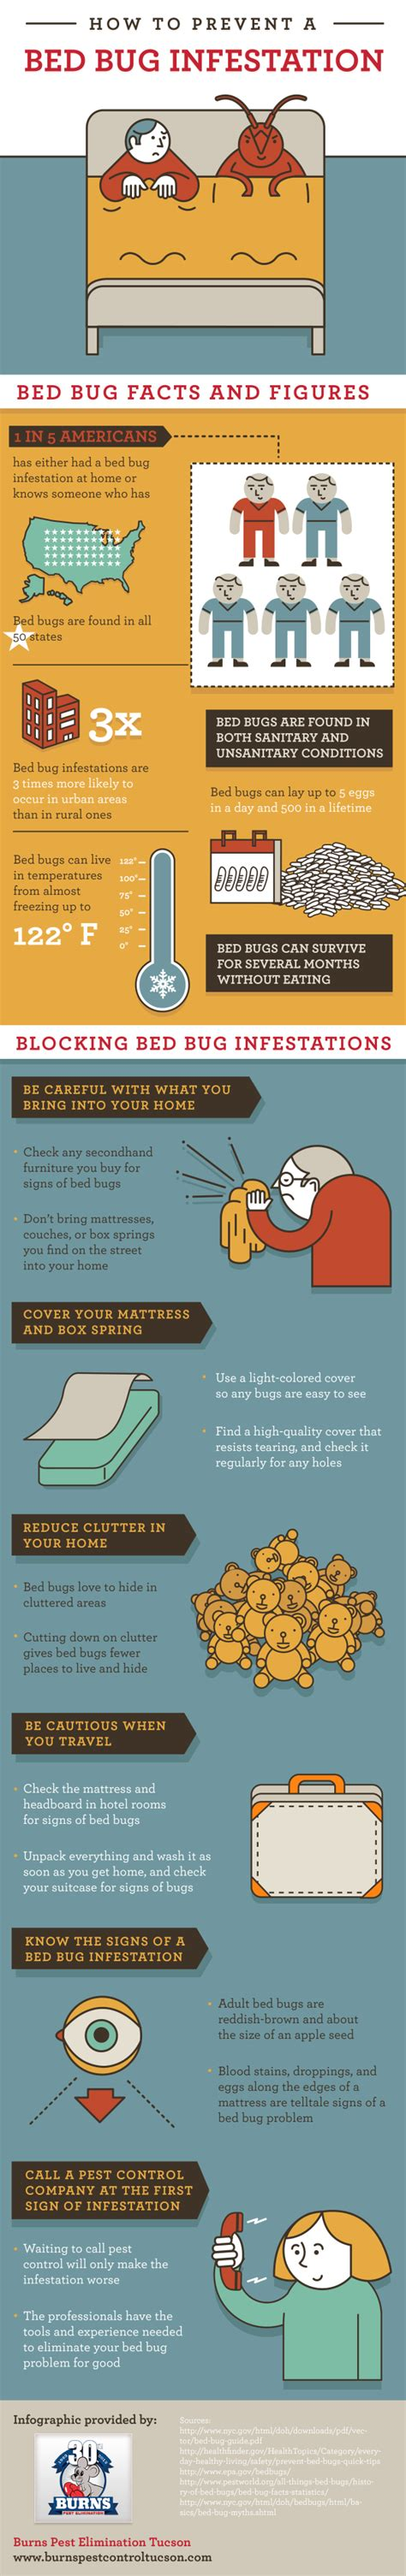 how to avoid bed bugs how to prevent a bed bug infestation infographic